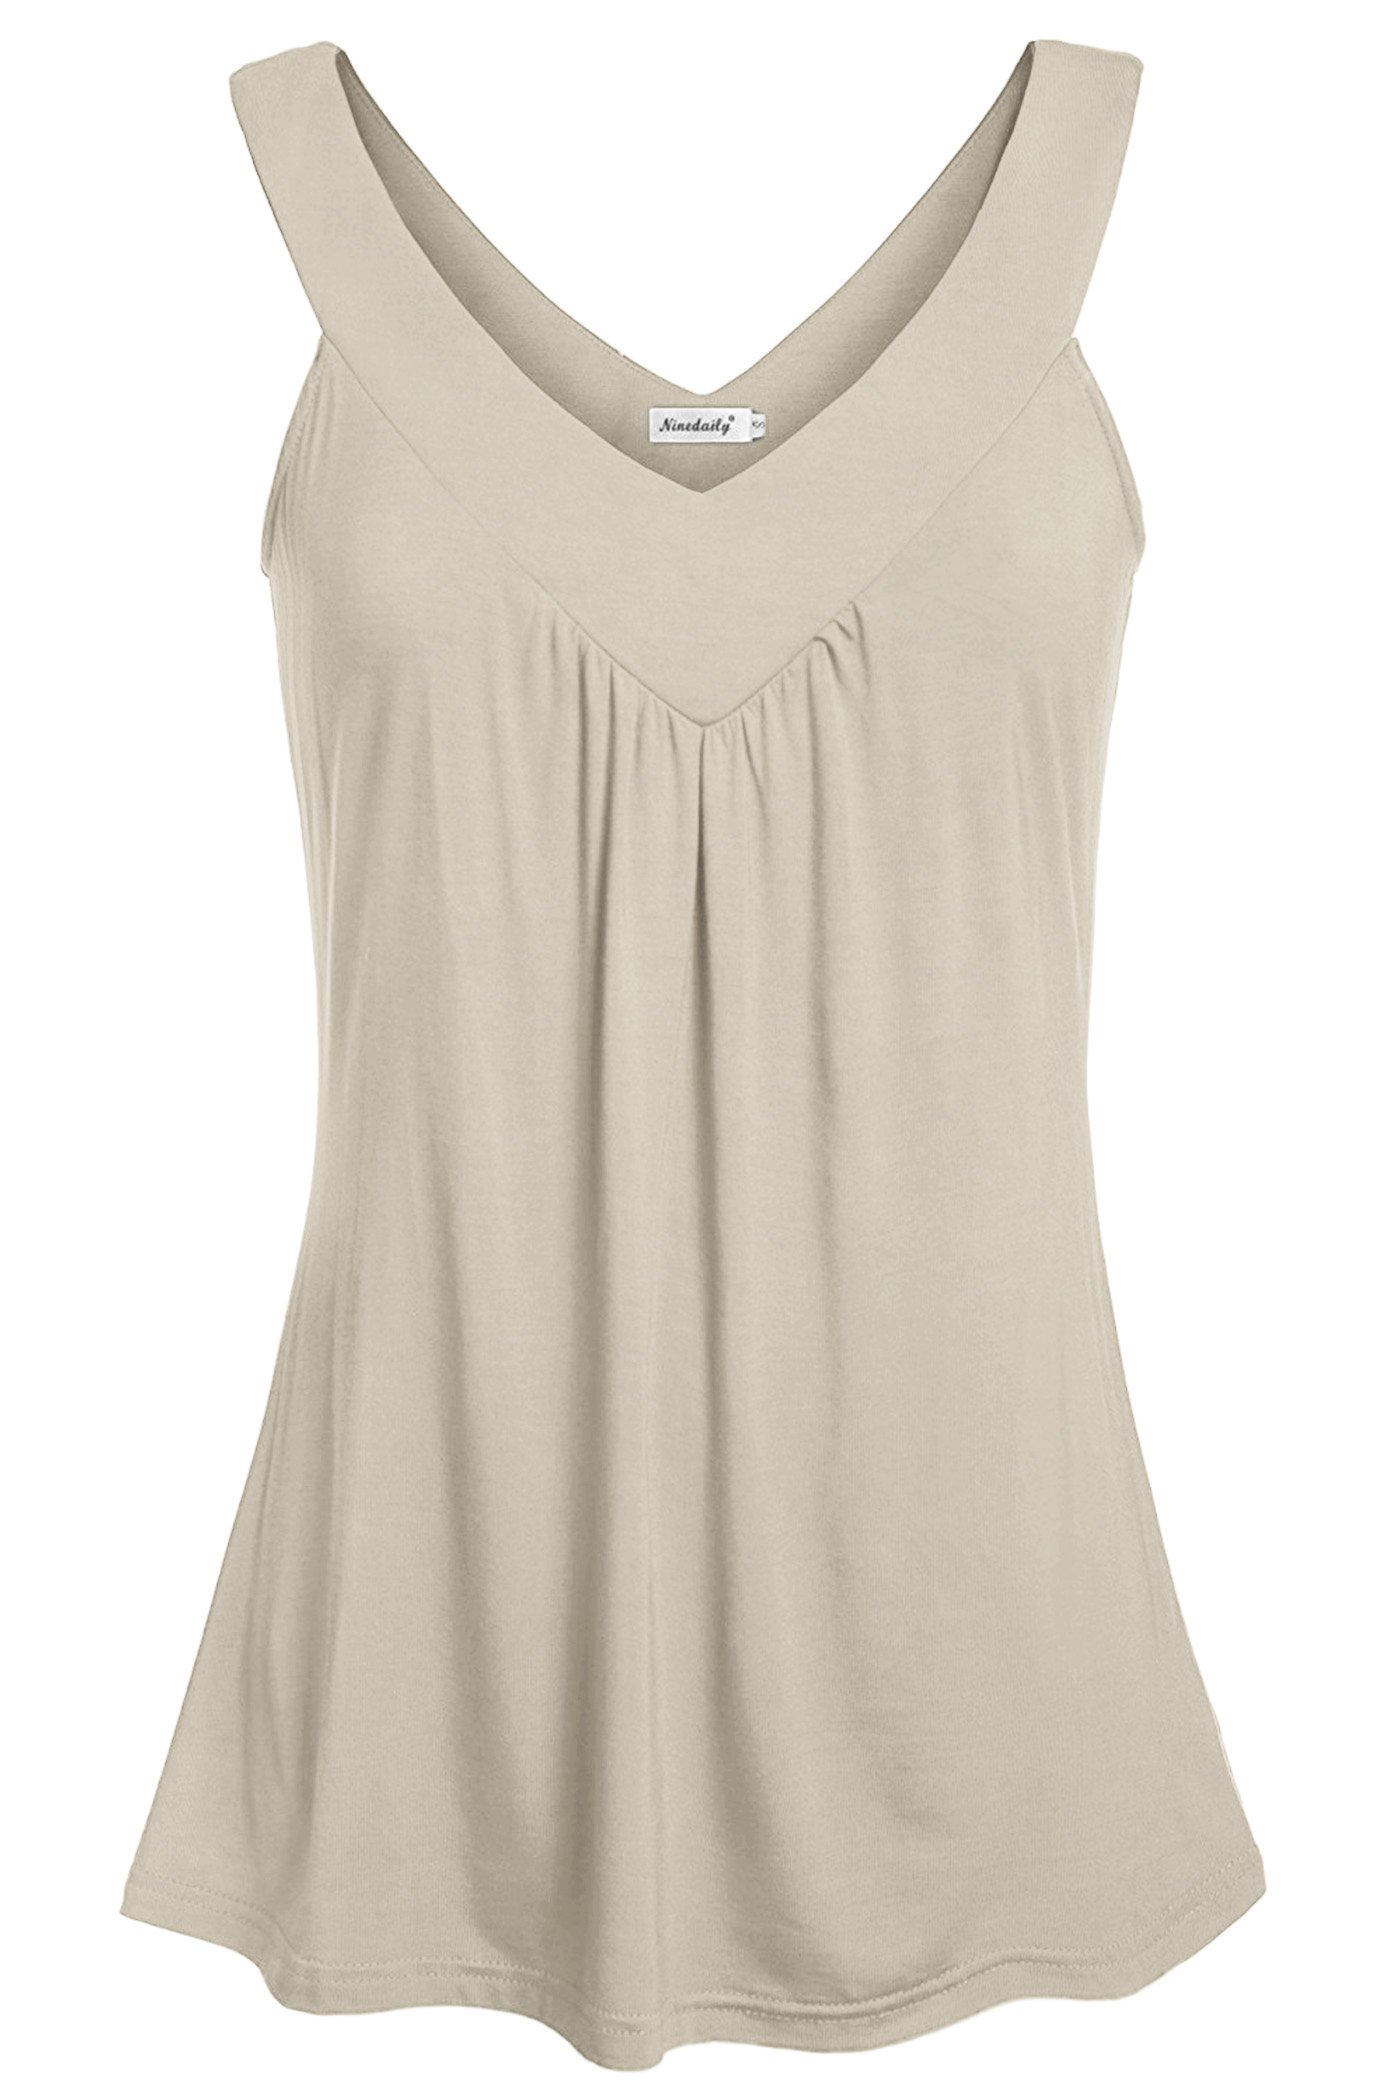 Ninedaily Women Summer Tunics for Leggings, Casual V Neck Sleeveless Blouse Tops for Work Business Casual Office Appearl Beige Size S